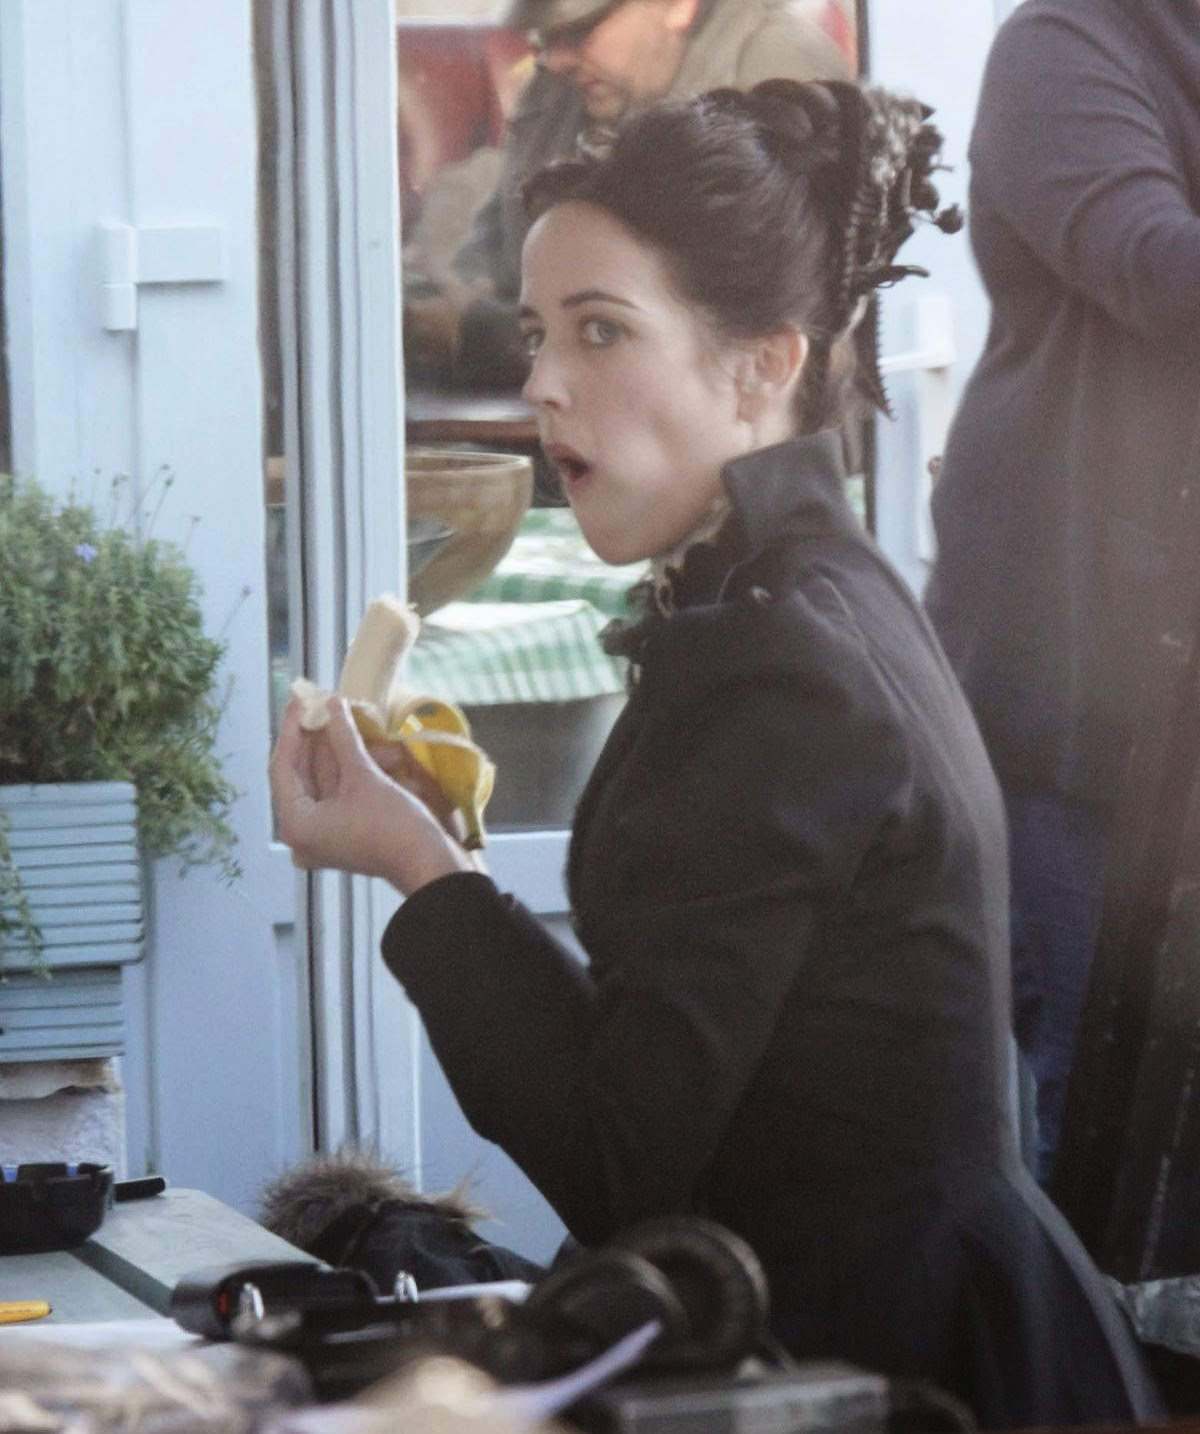 http://4.bp.blogspot.com/-pIGHlCNckZw/Ut2KXC5Wy9I/AAAAAAAAQgs/Ny3dqB71Q3c/s1600/eva-green-on-the-set-of-penny-dreadful-in-ireland_2.jpg